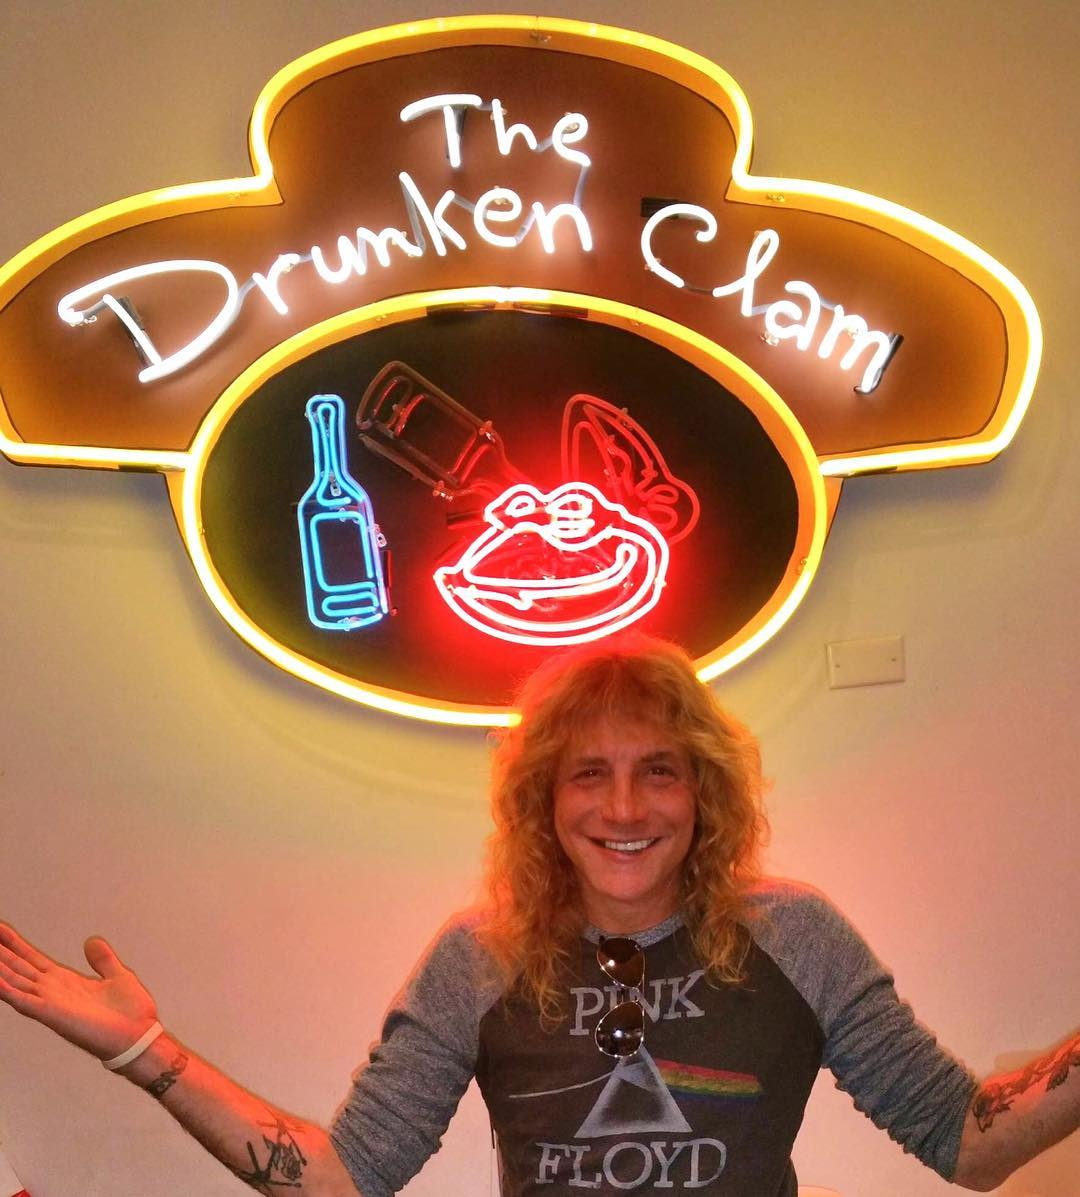 Foto de @realstevenadler